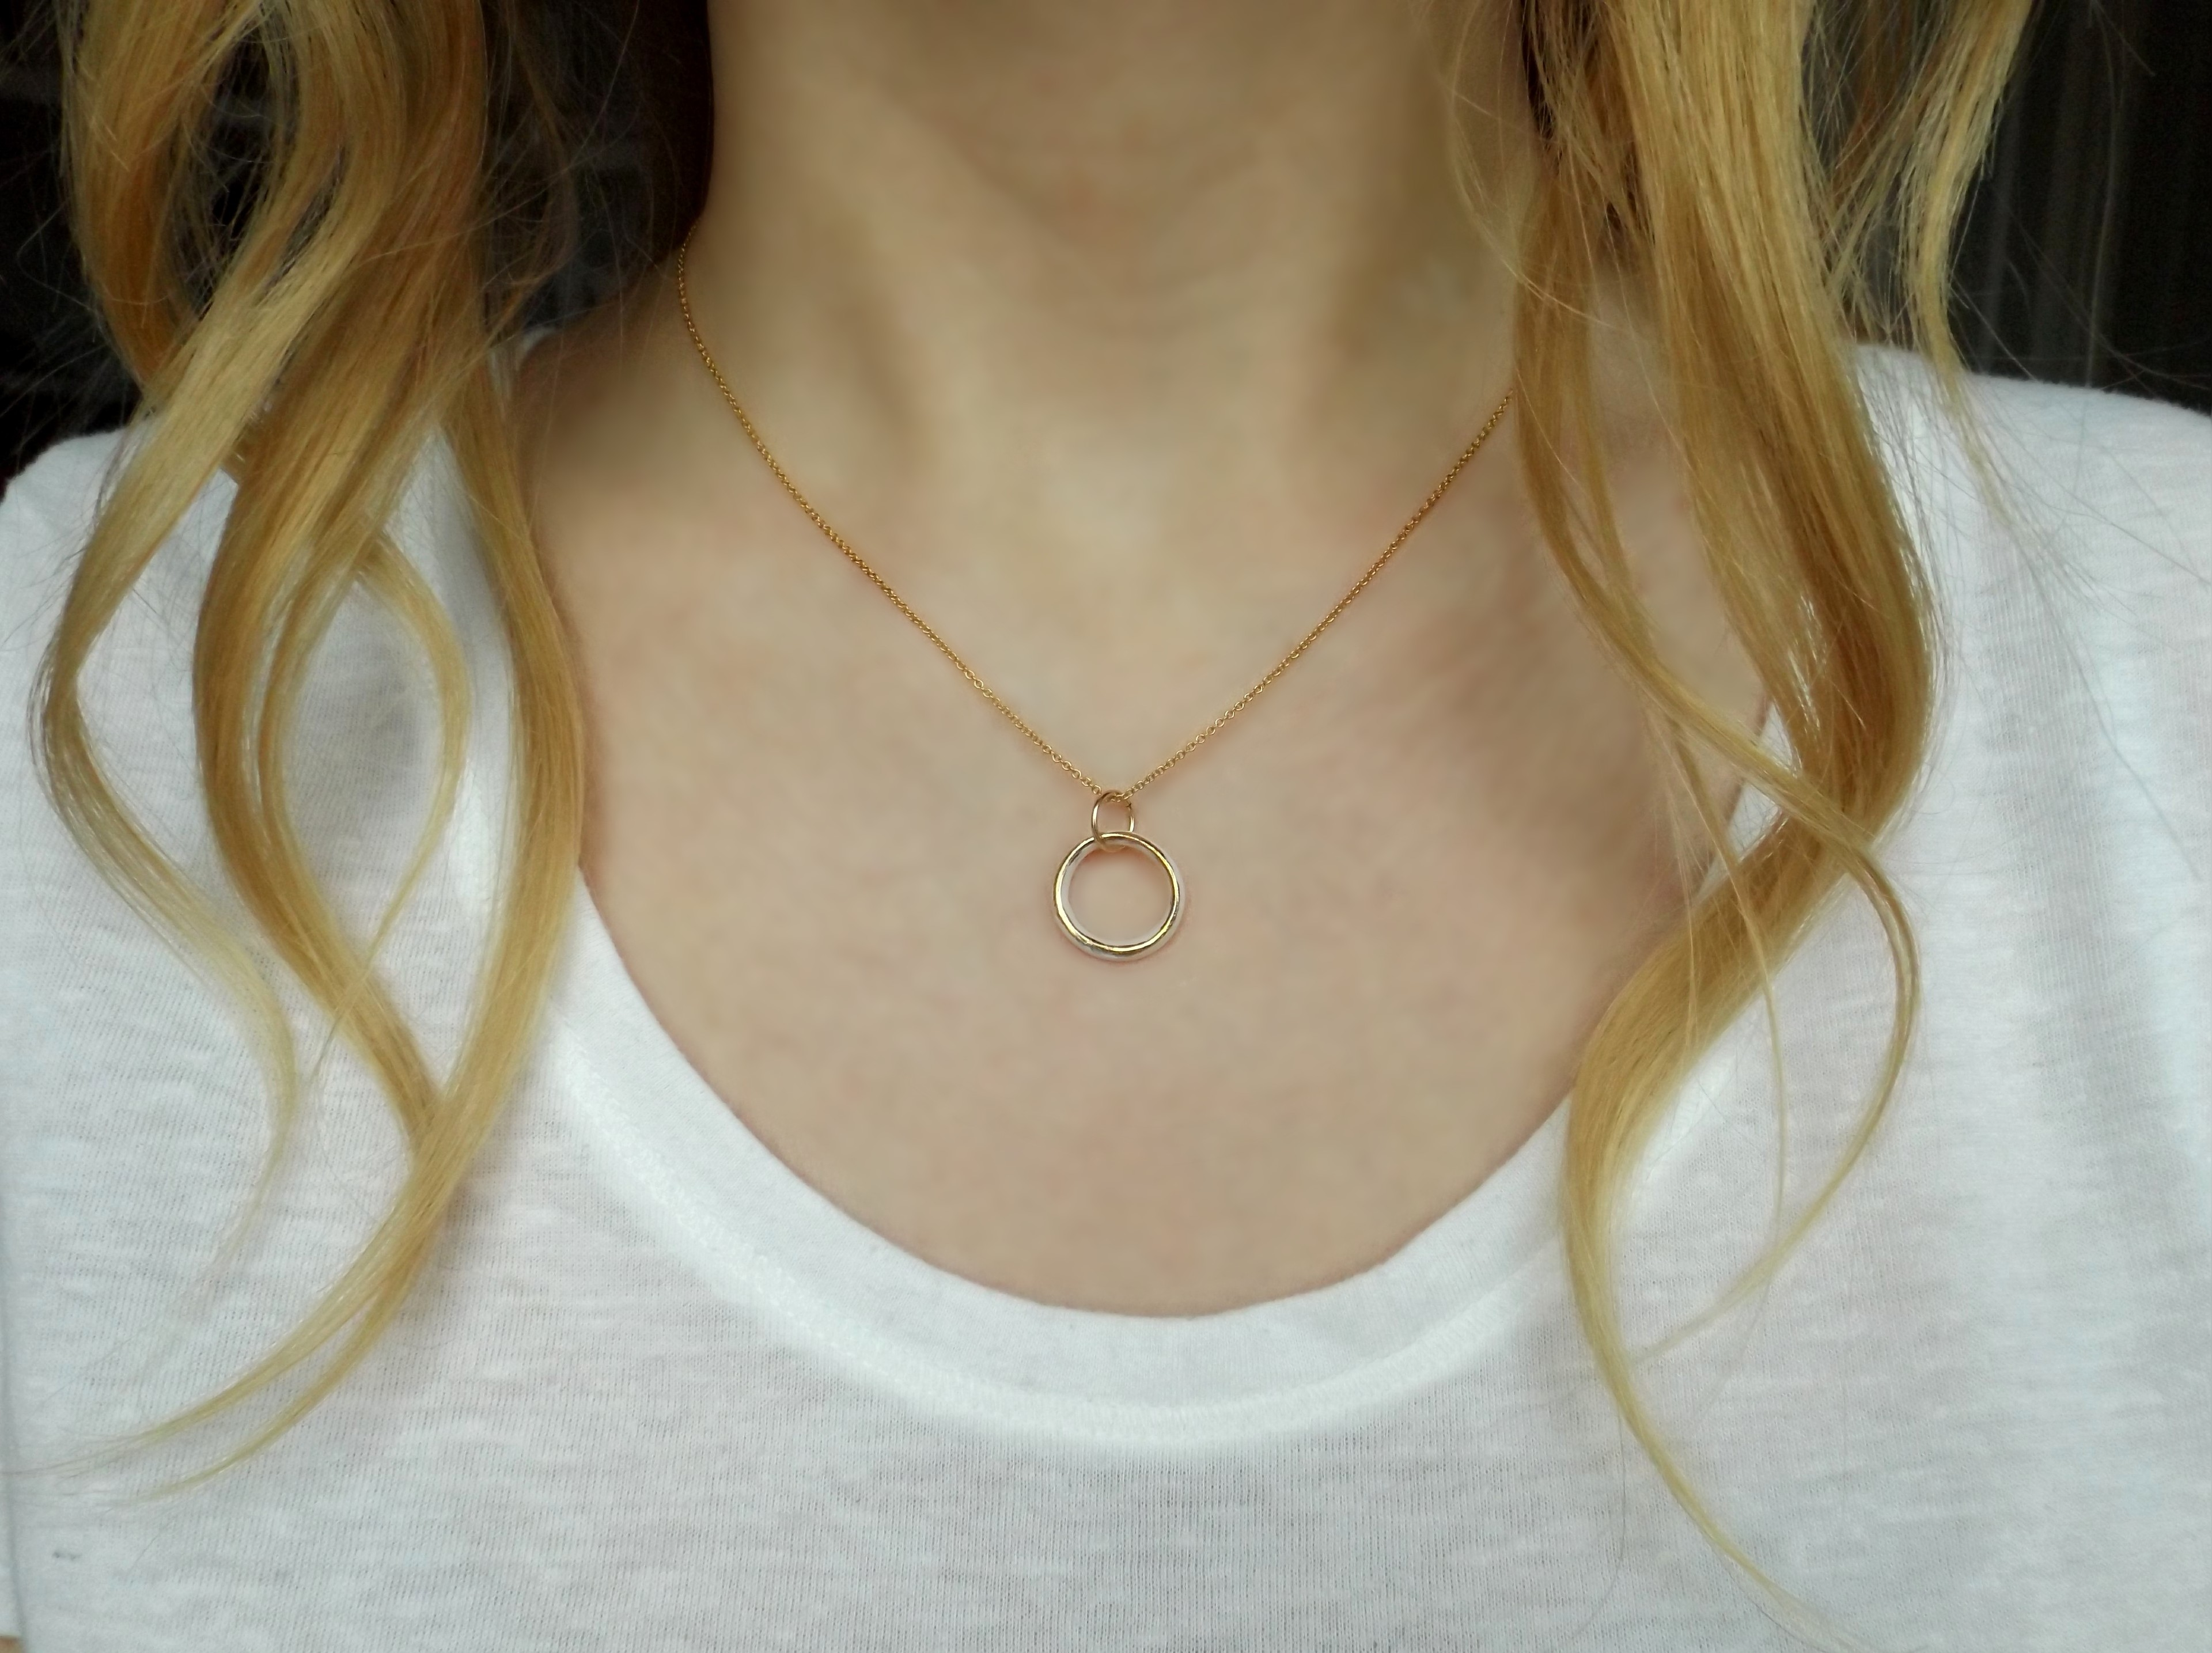 Porcelain and gold ring necklace.